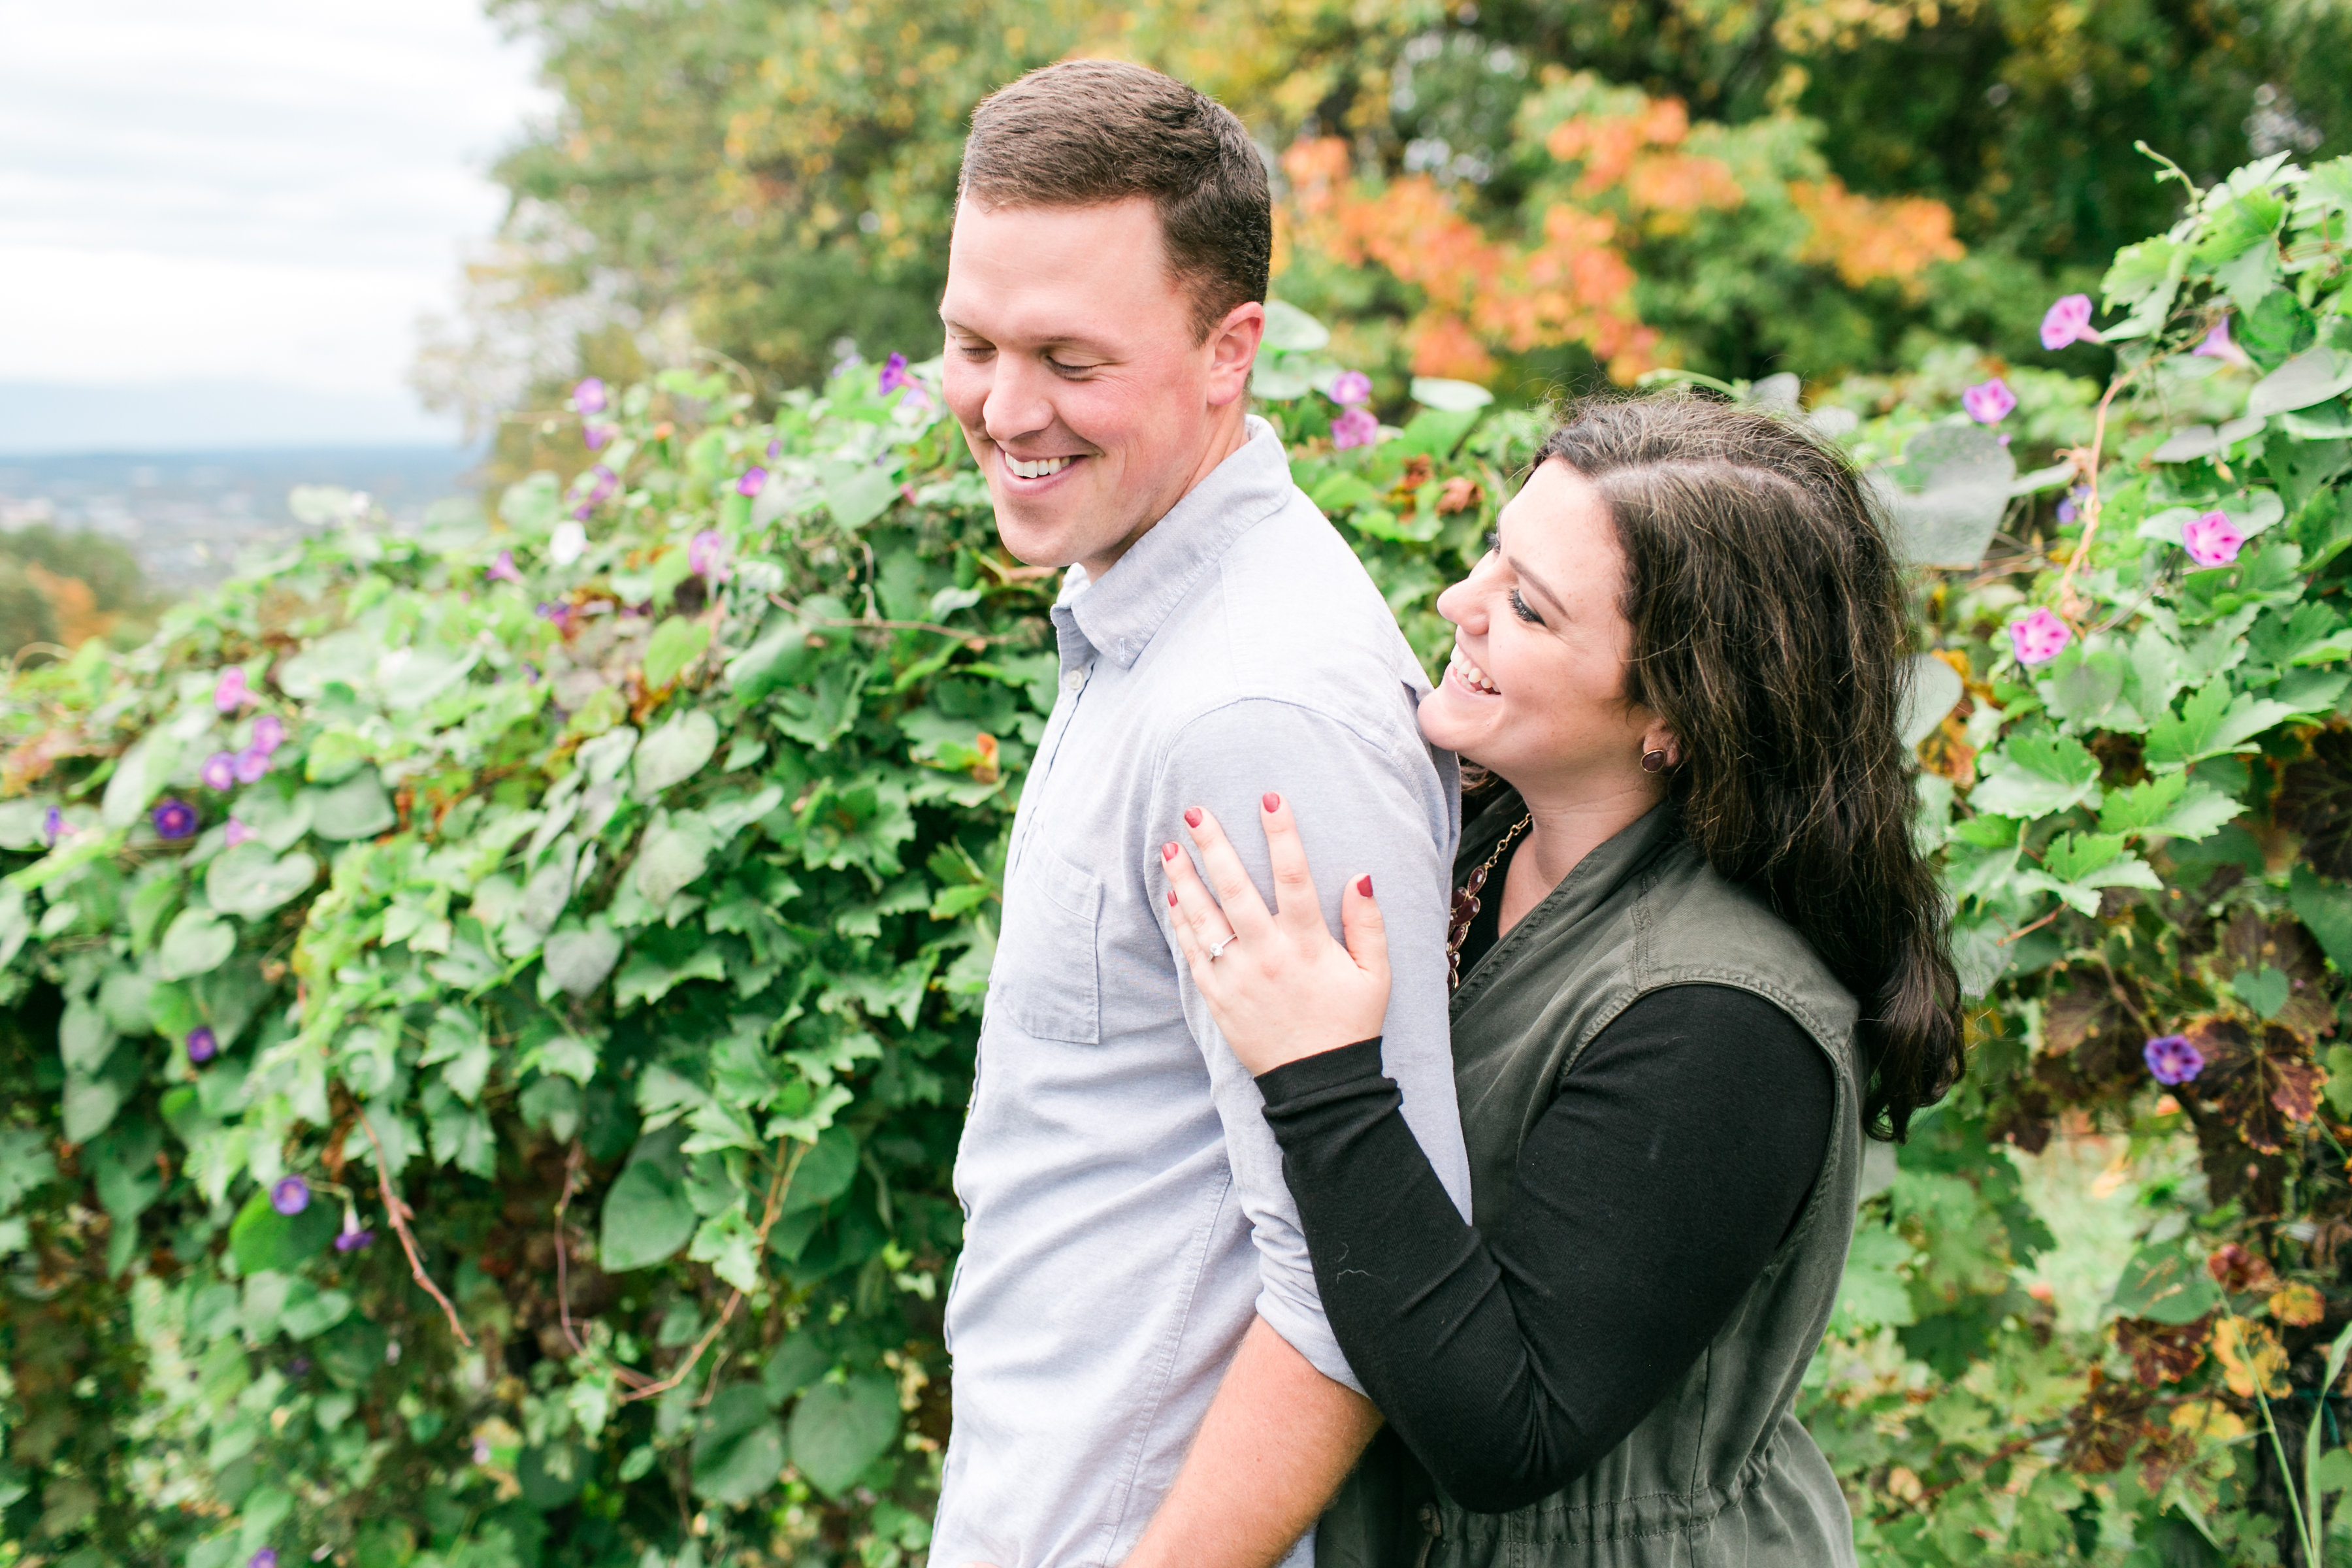 2017 engaged new year resolutions jessica ryan photography virginia wedding photographer